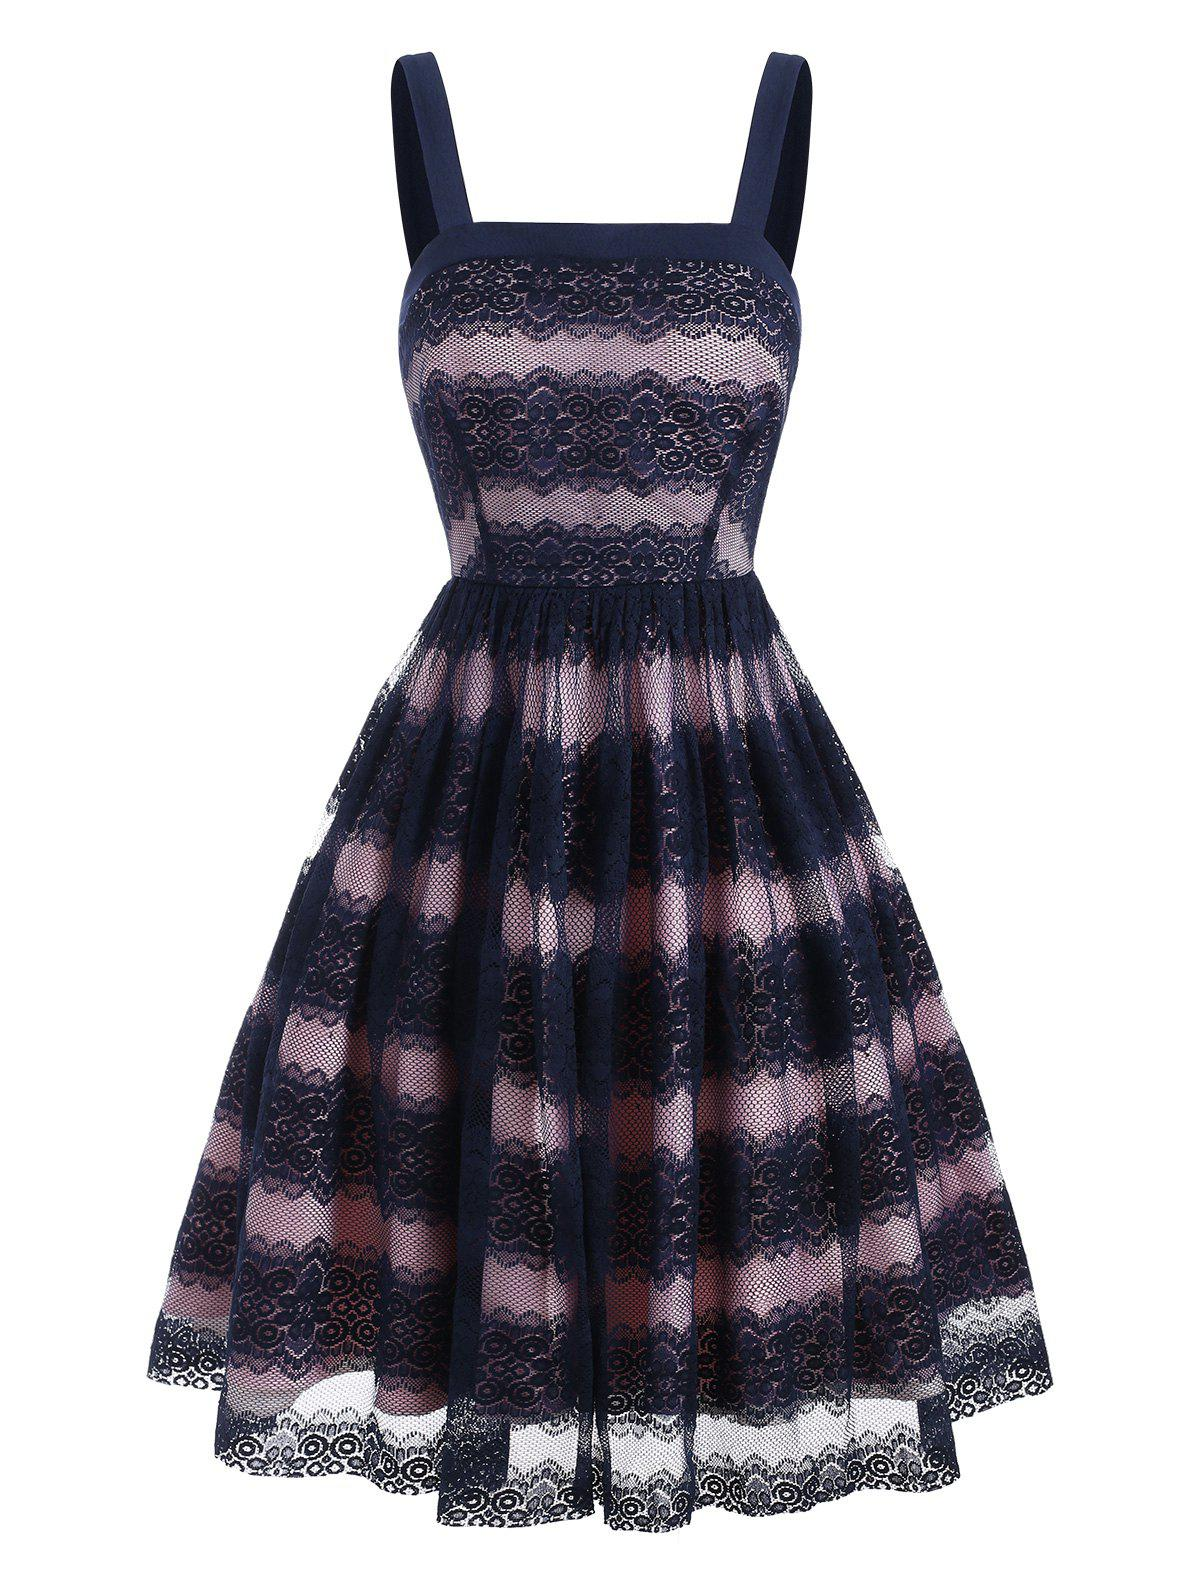 Lace Overlay Square Neck Colorblock Dress - DEEP BLUE S